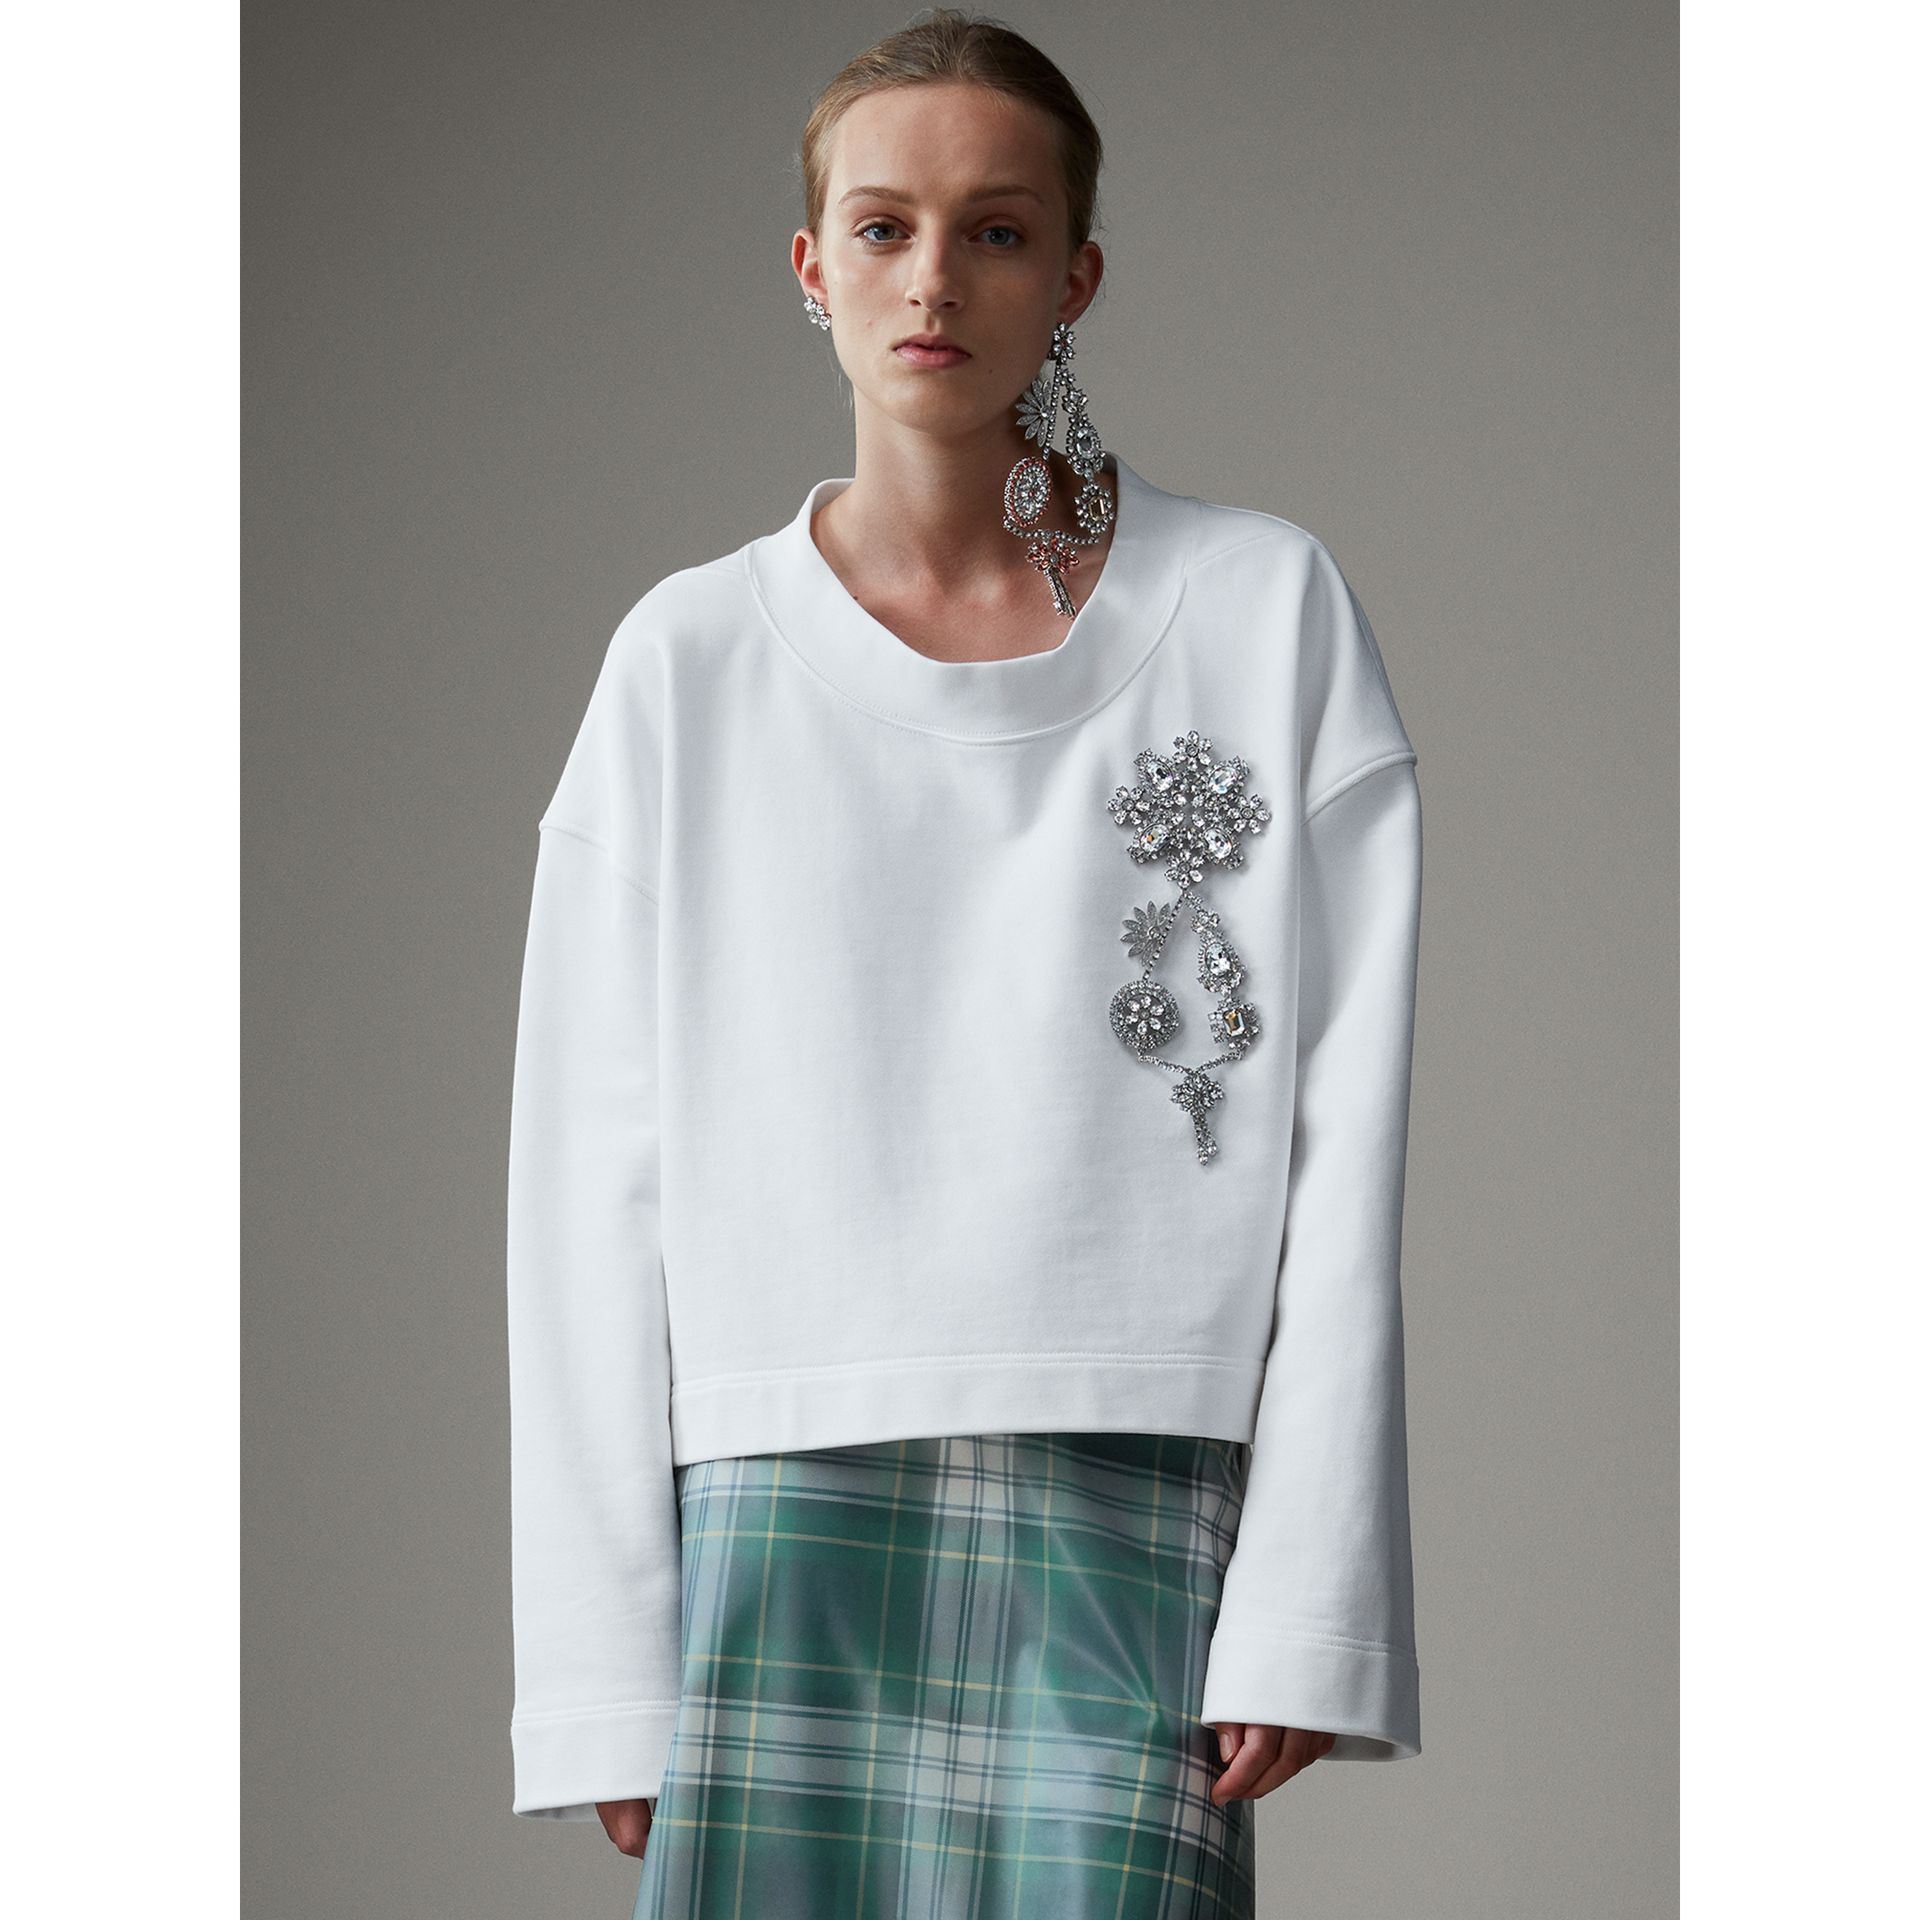 Sweat-shirt court avec broche en cristal (Blanc Optique) - Femme | Burberry - photo de la galerie 6